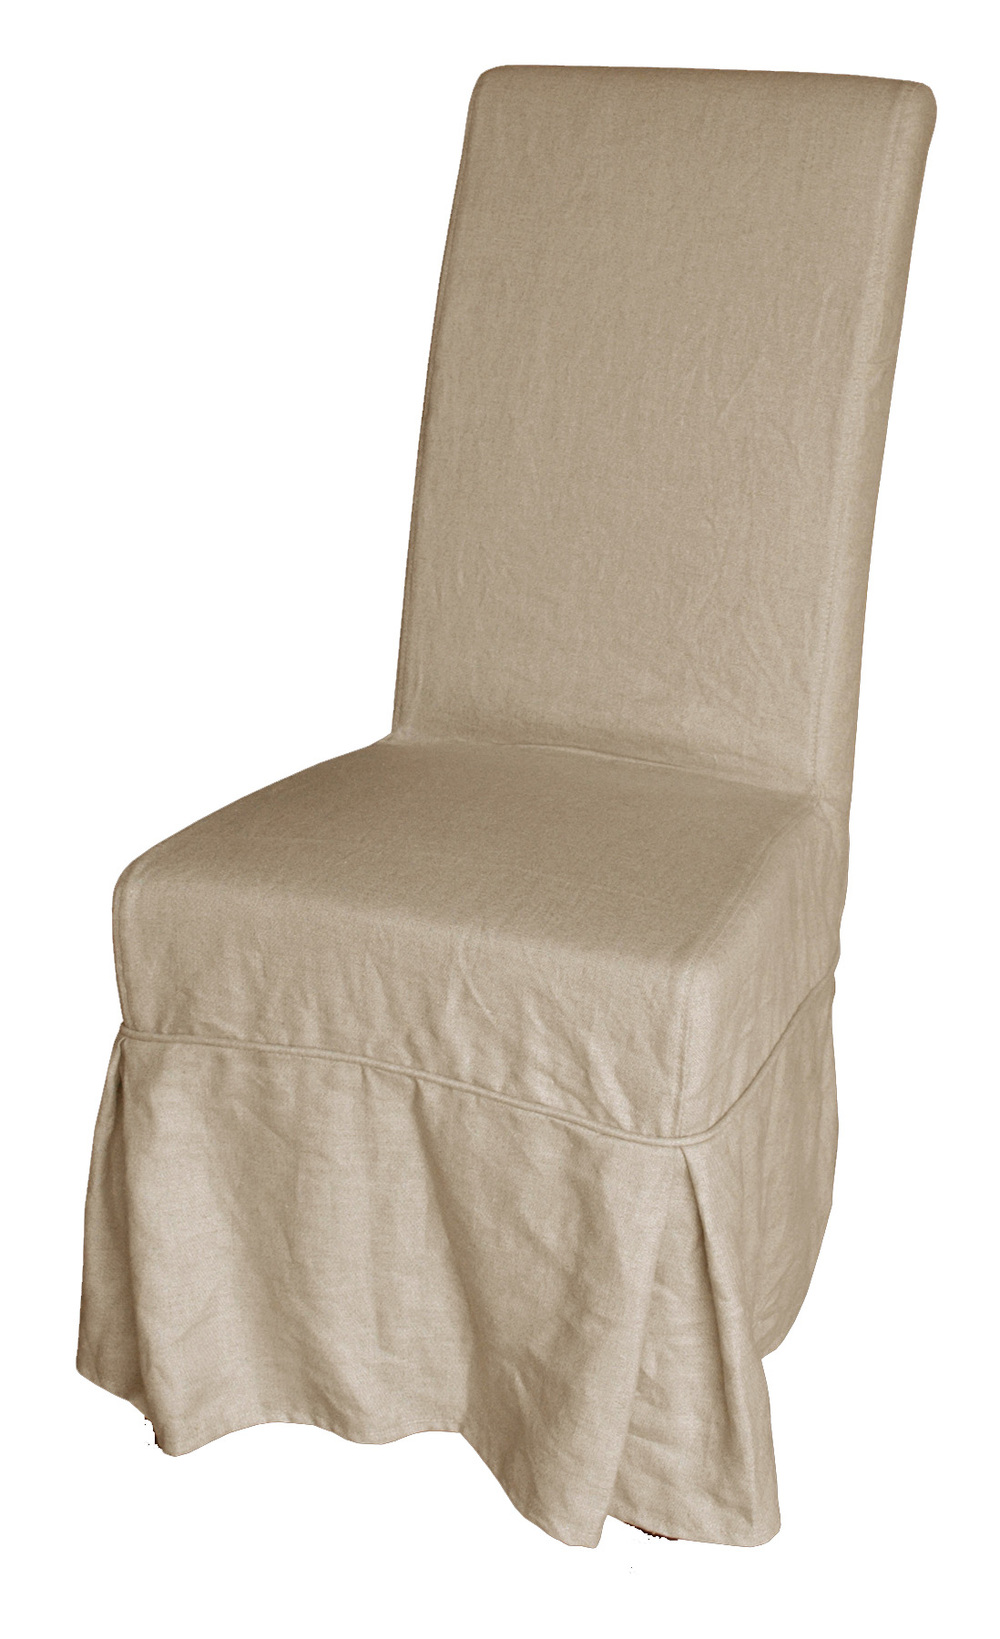 GJ Styles - Slipcovered Dining Chair with Bow Detail